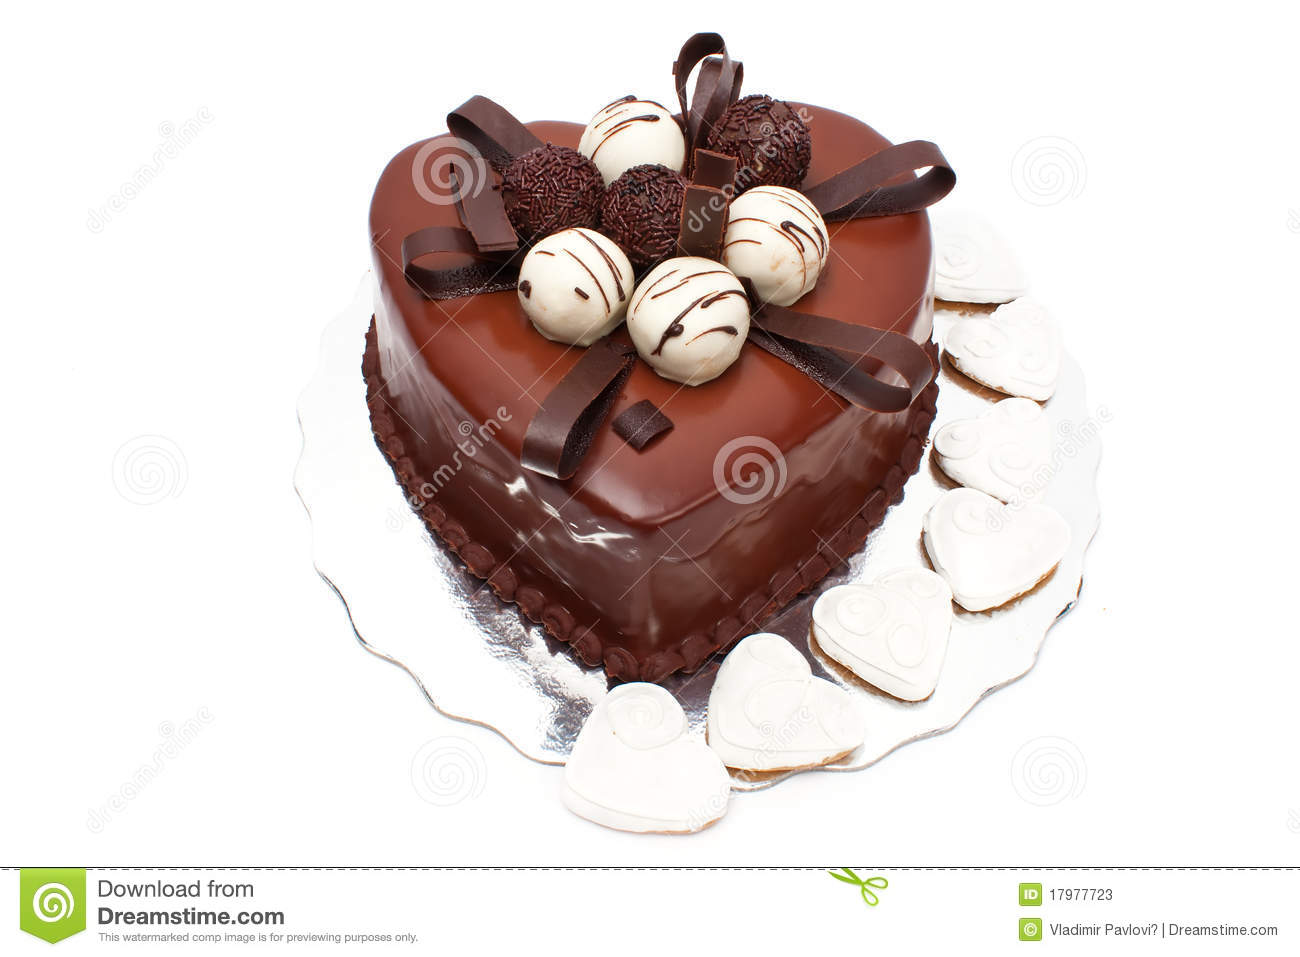 Heart Shaped Cake Stock Photos : Chocolate Cake In Heart Shape Stock Photos - Image: 17977723